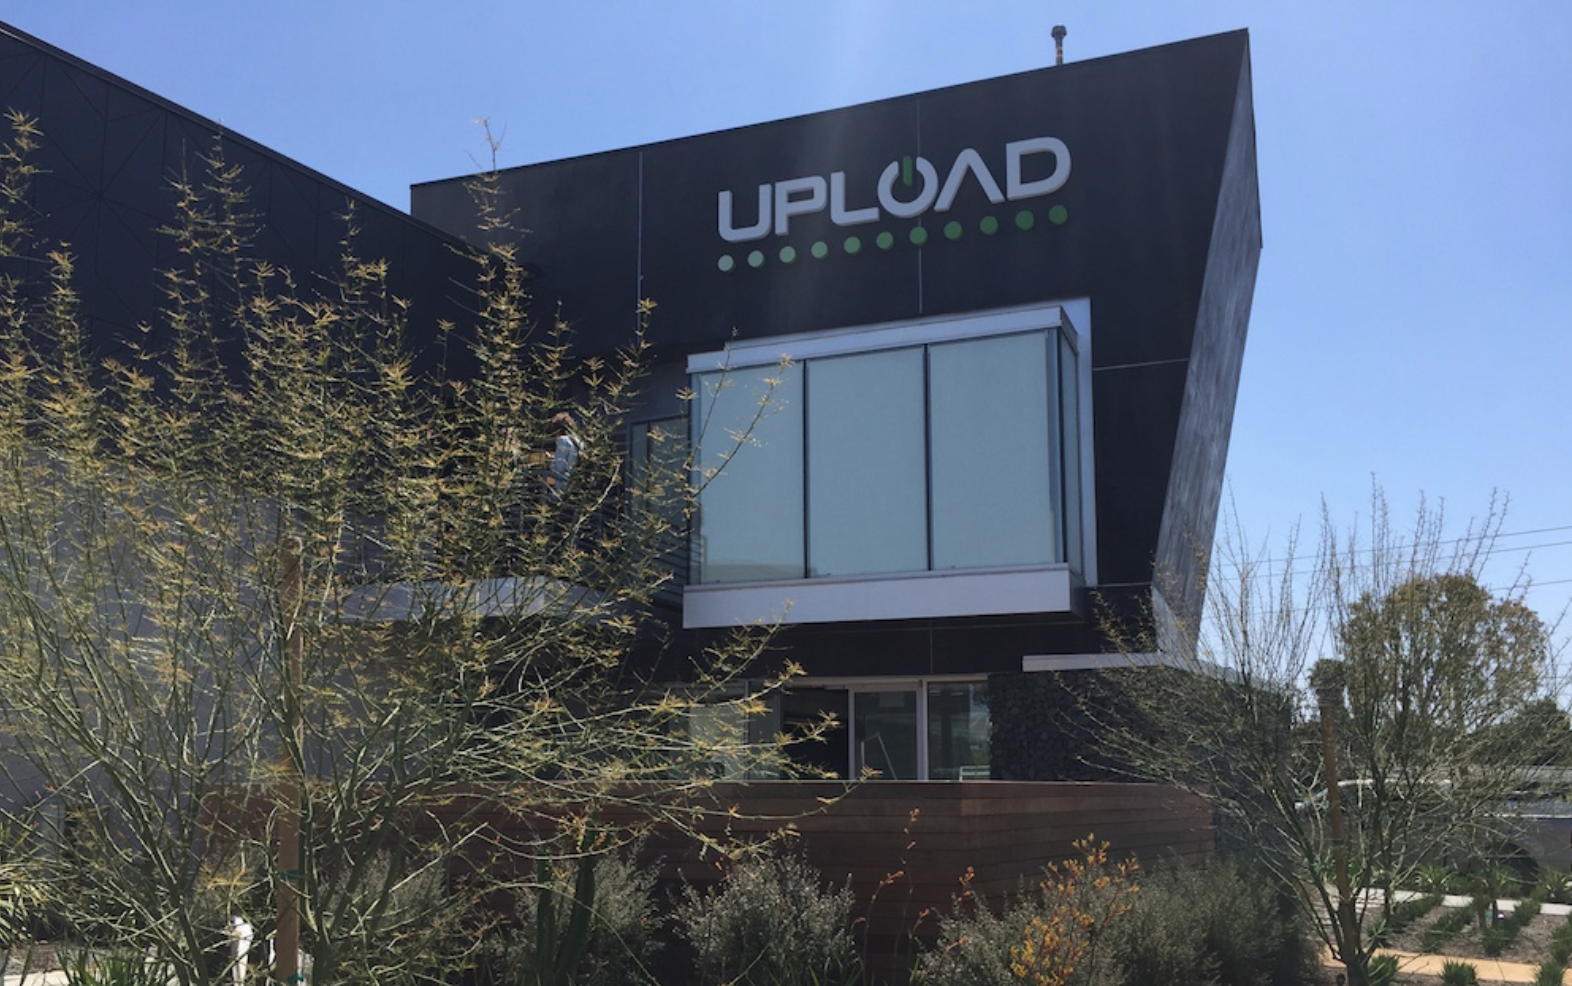 VR startup Upload shuts down its offices as funding from Oculus founder runs out